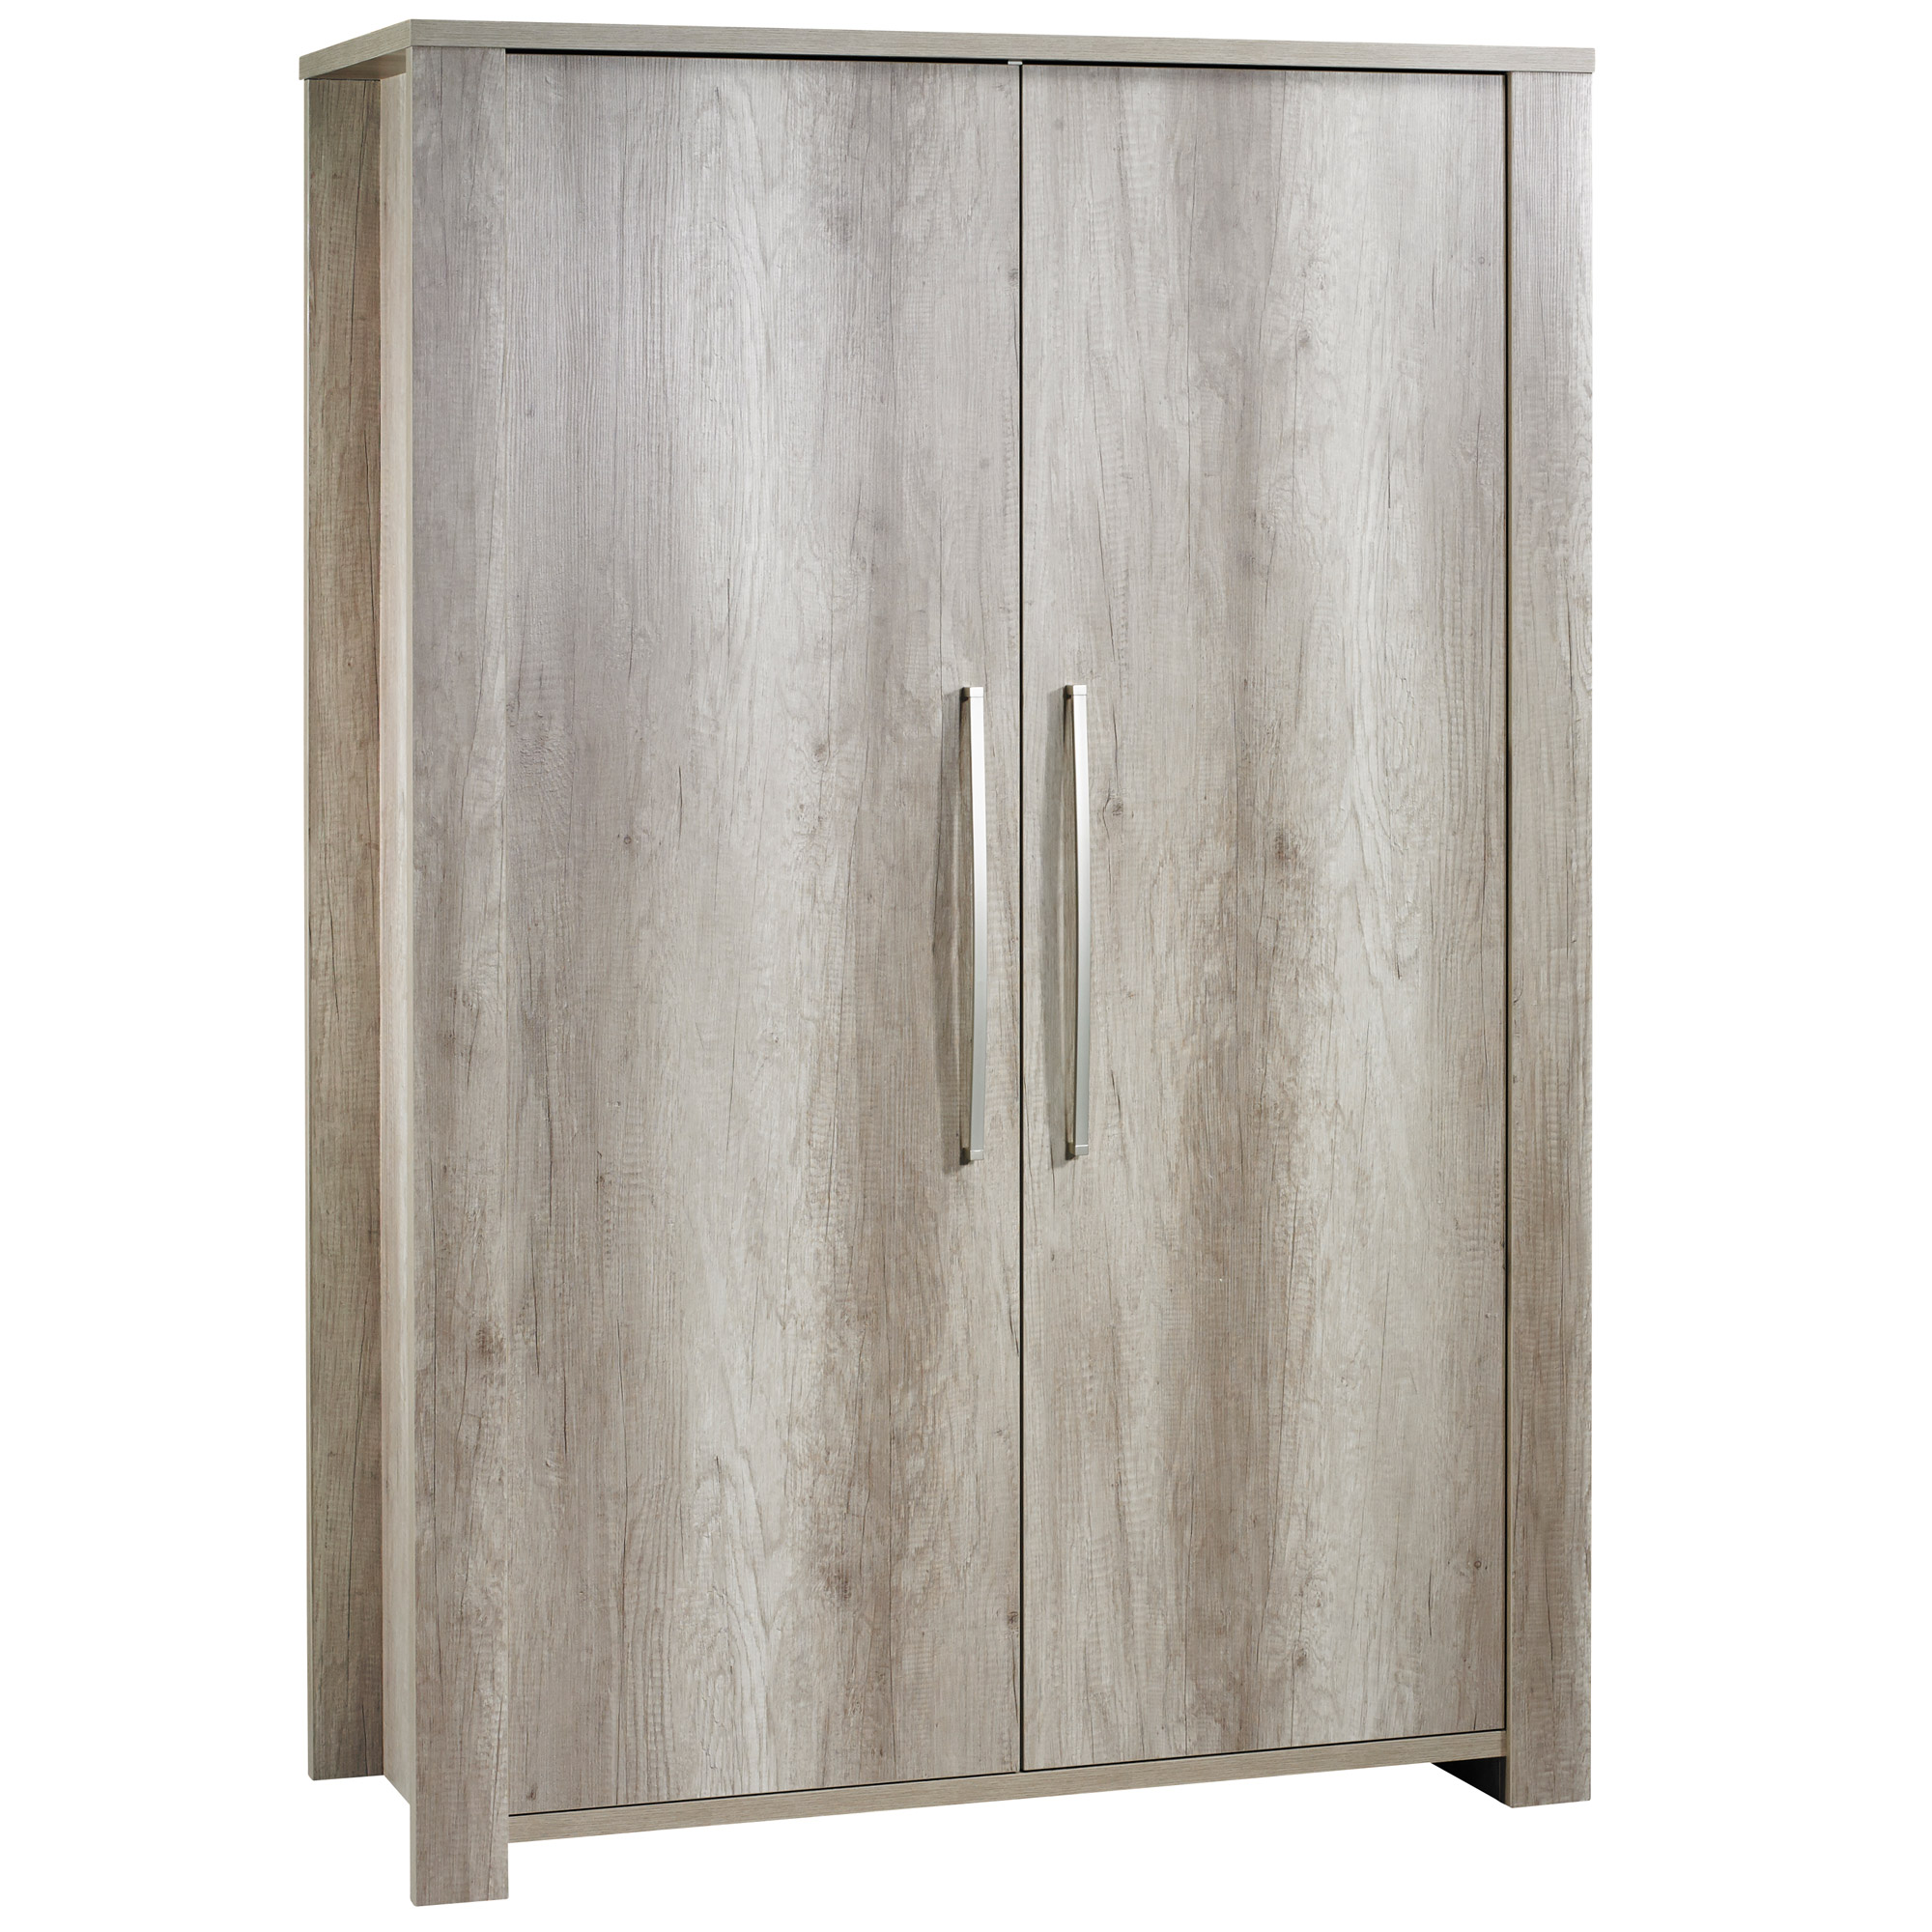 Emmy armoire 2 portes